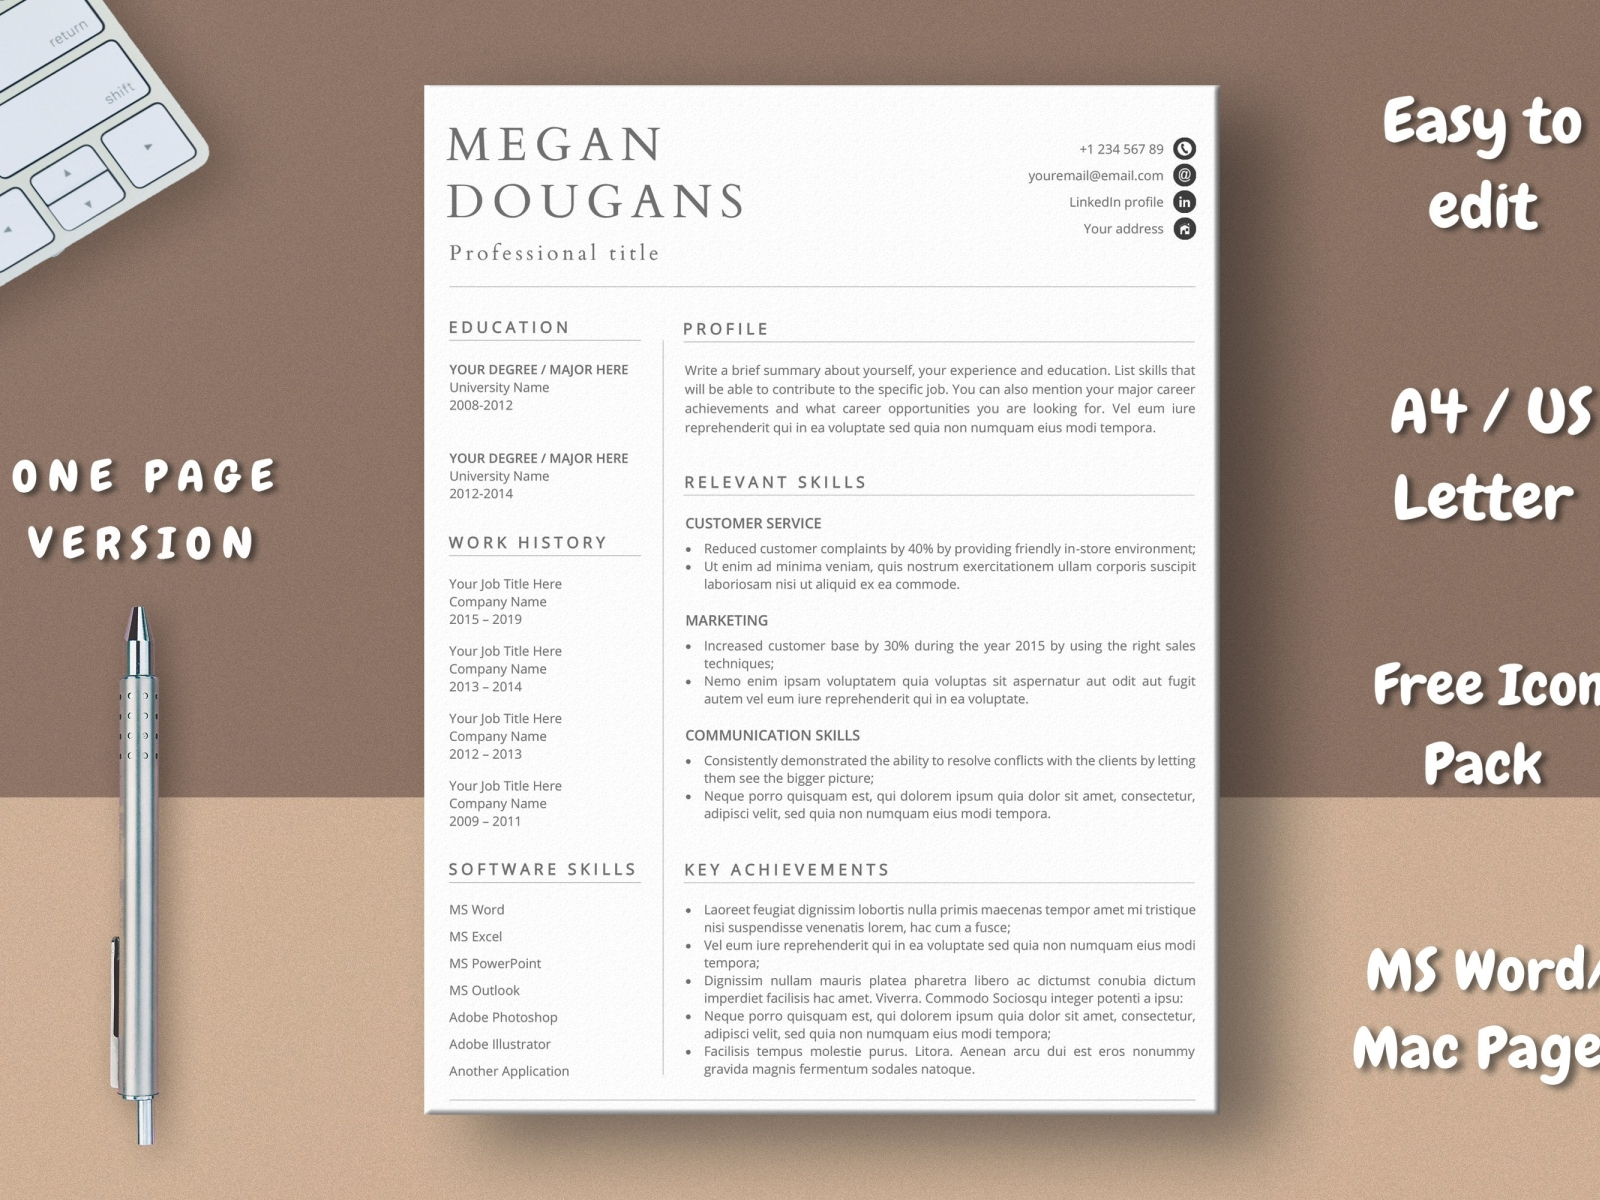 Skill Based Resume Template Free Download from cdn.dribbble.com